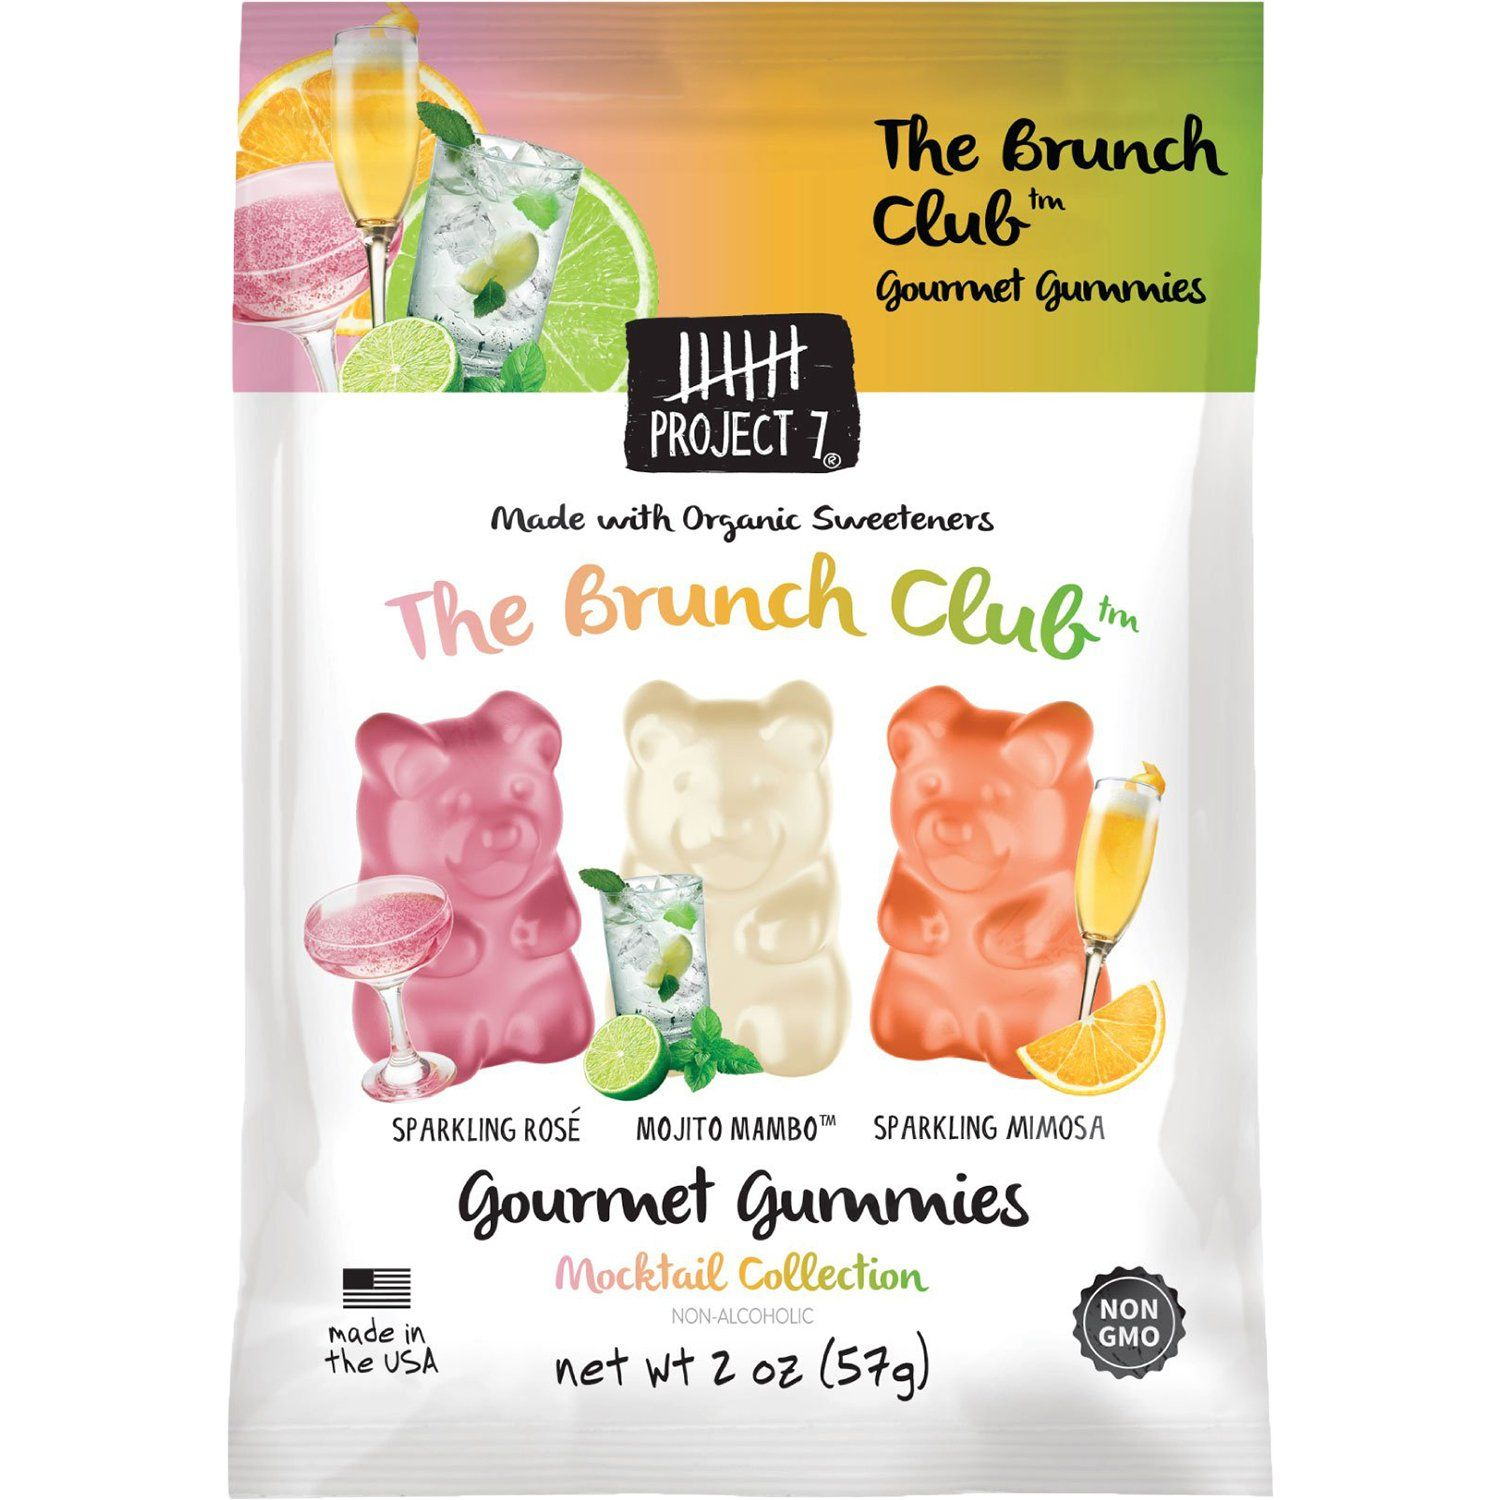 Project 7 Gourmet Gummies Project 7 Brunch Club 2 Ounce